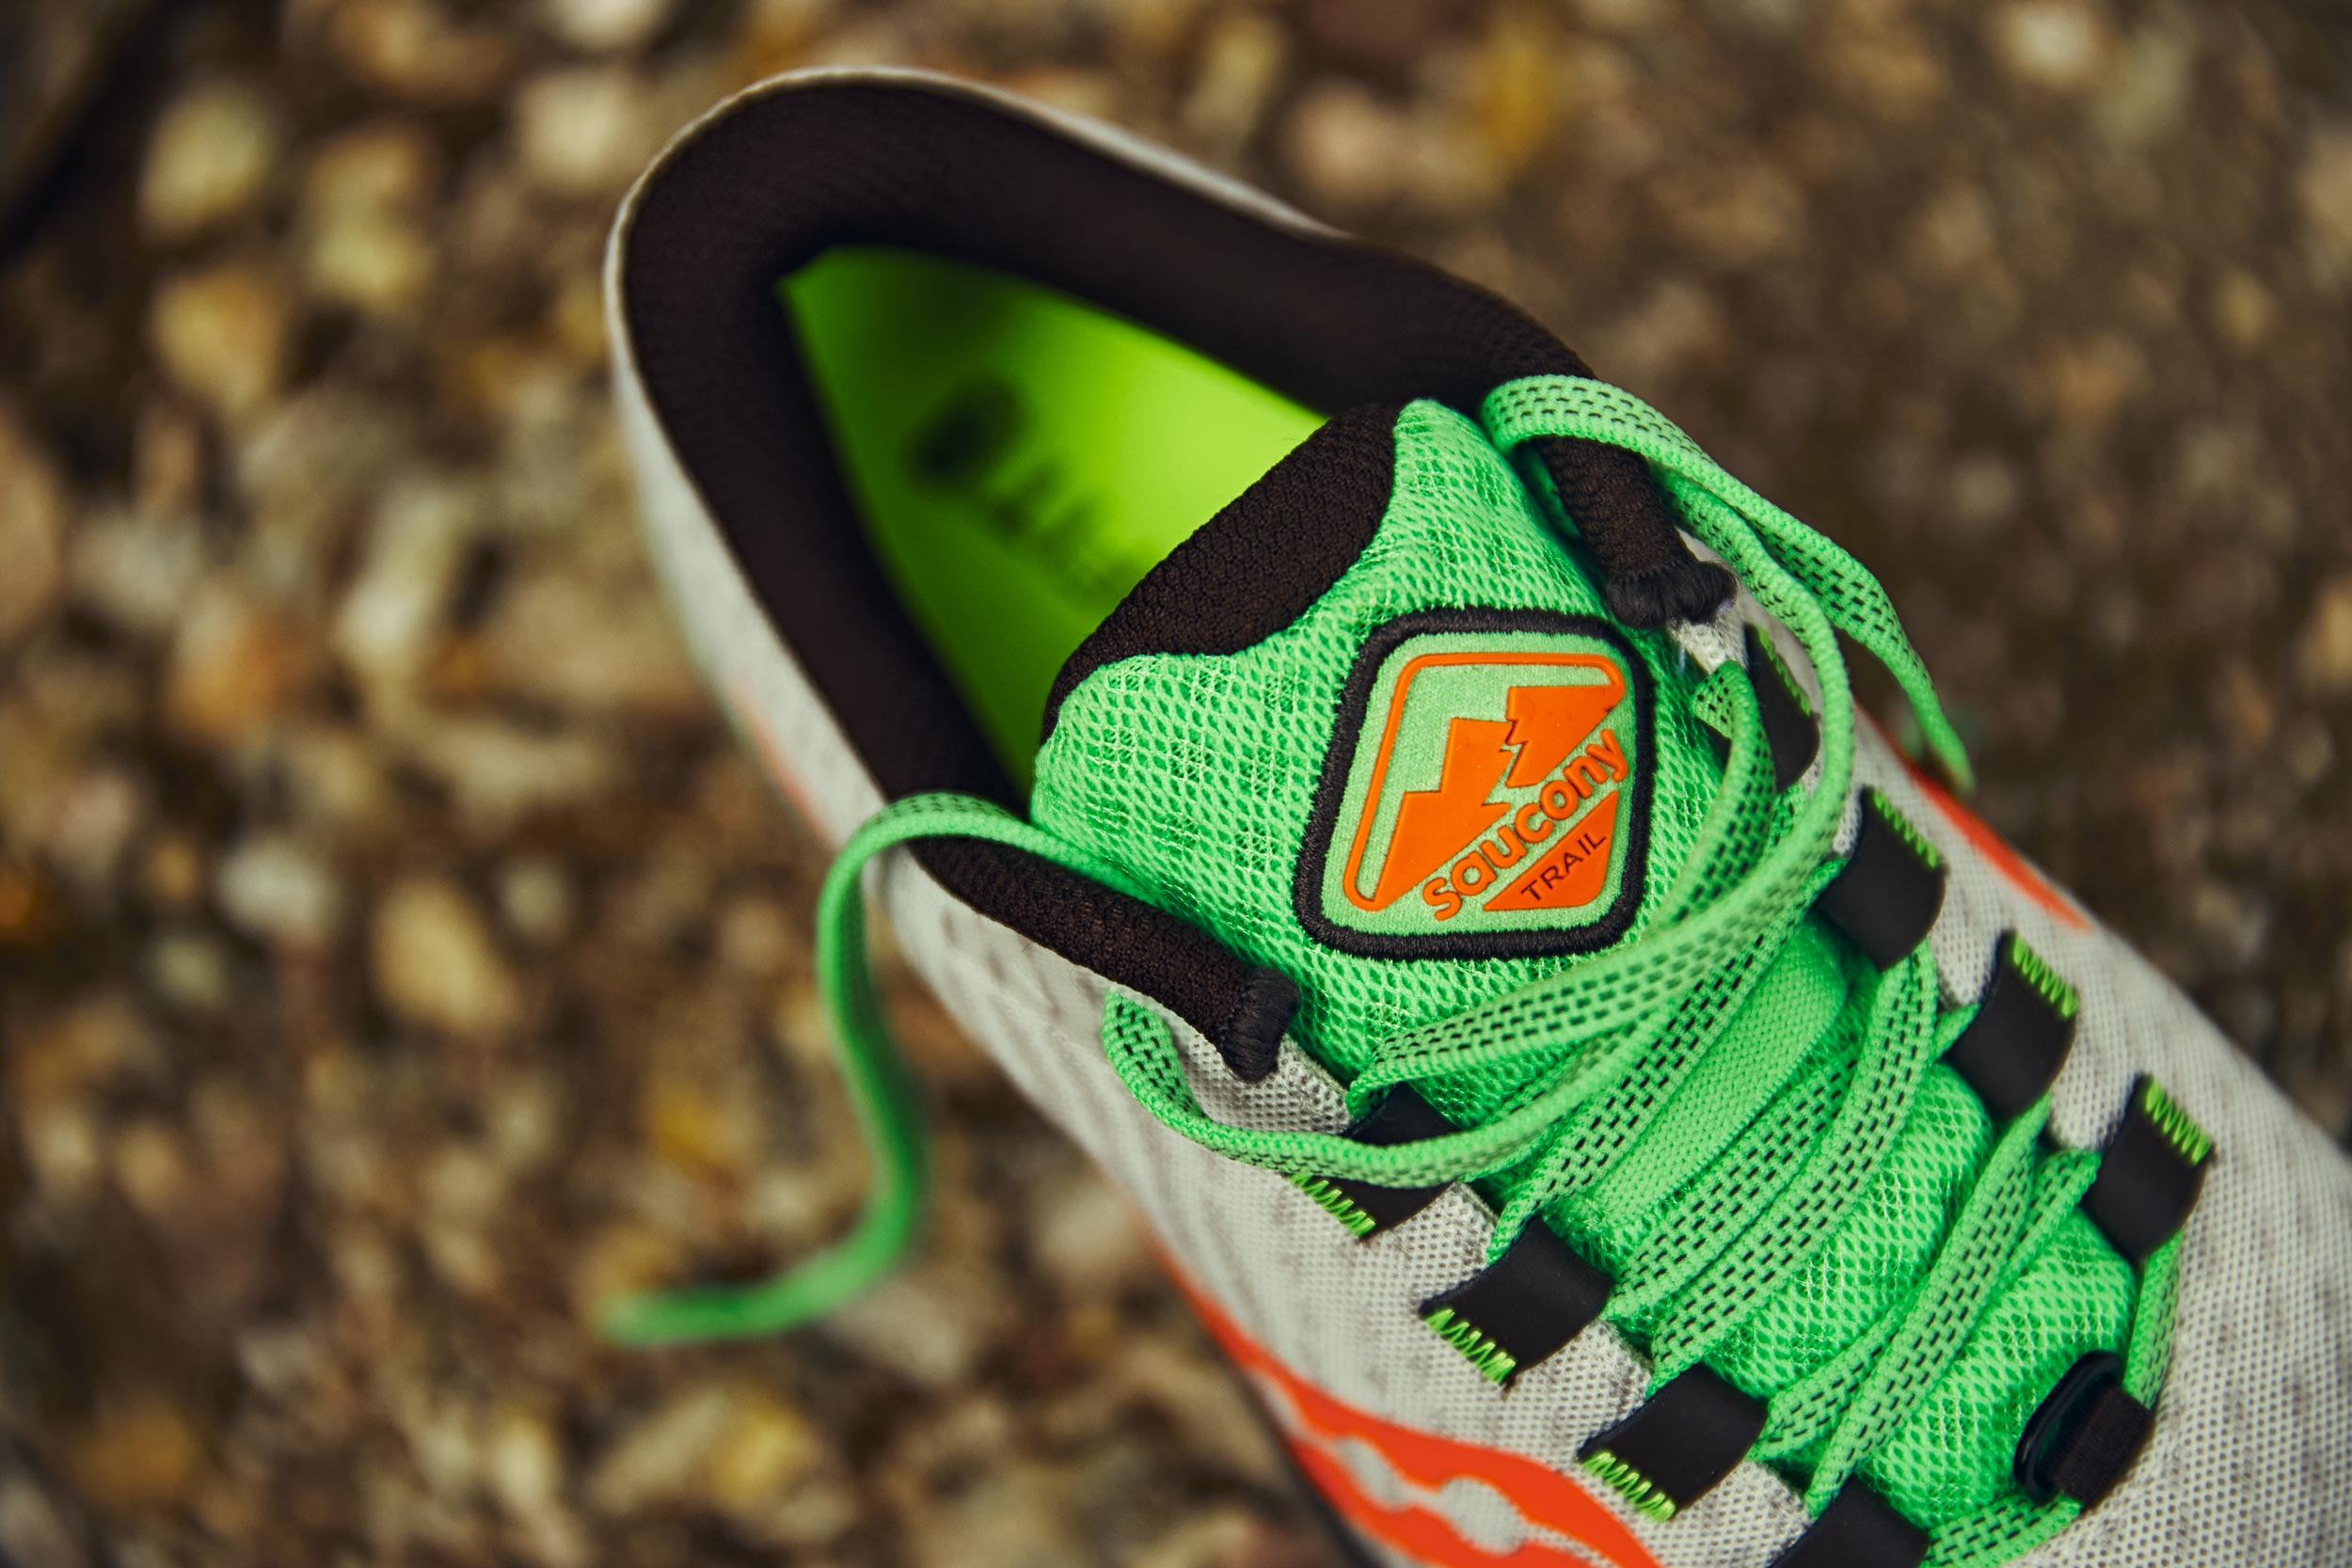 060920_maguire_saucony_trail_canyonTR_0139